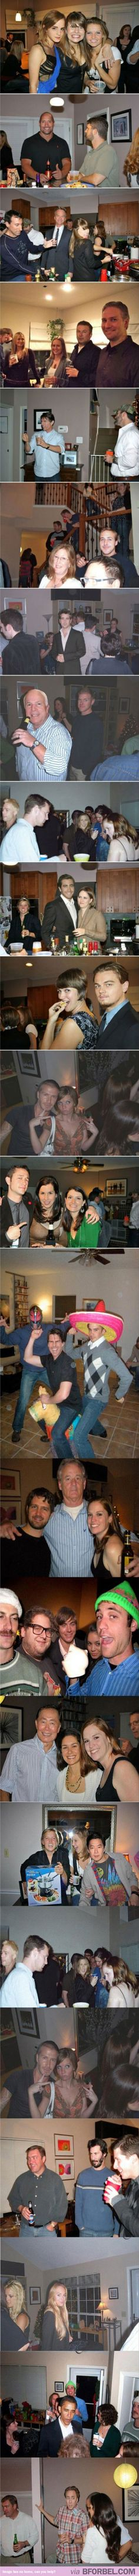 Photoshopping celebrities into your party pictures. Partying with Emma Watson, e… – funny photoshop Funny Photoshop, Party Pictures, Say Something, Emma Watson, Things To Think About, Random Stuff, Clever, Ann, Photographs